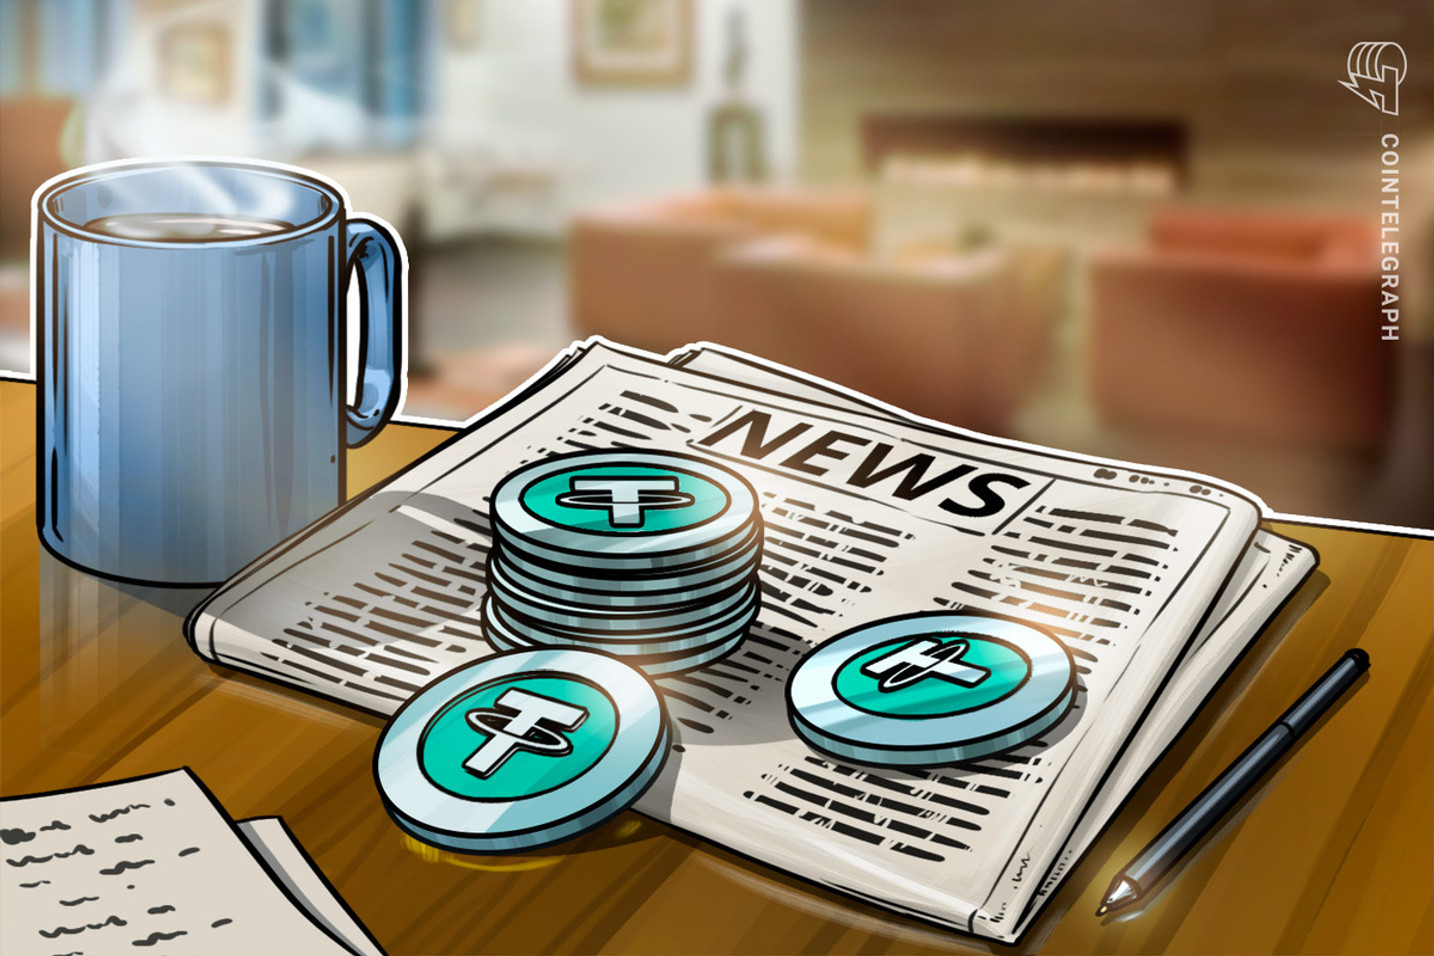 160 Million USDT Tokens Minted During Bitcoin's Rise to $9K